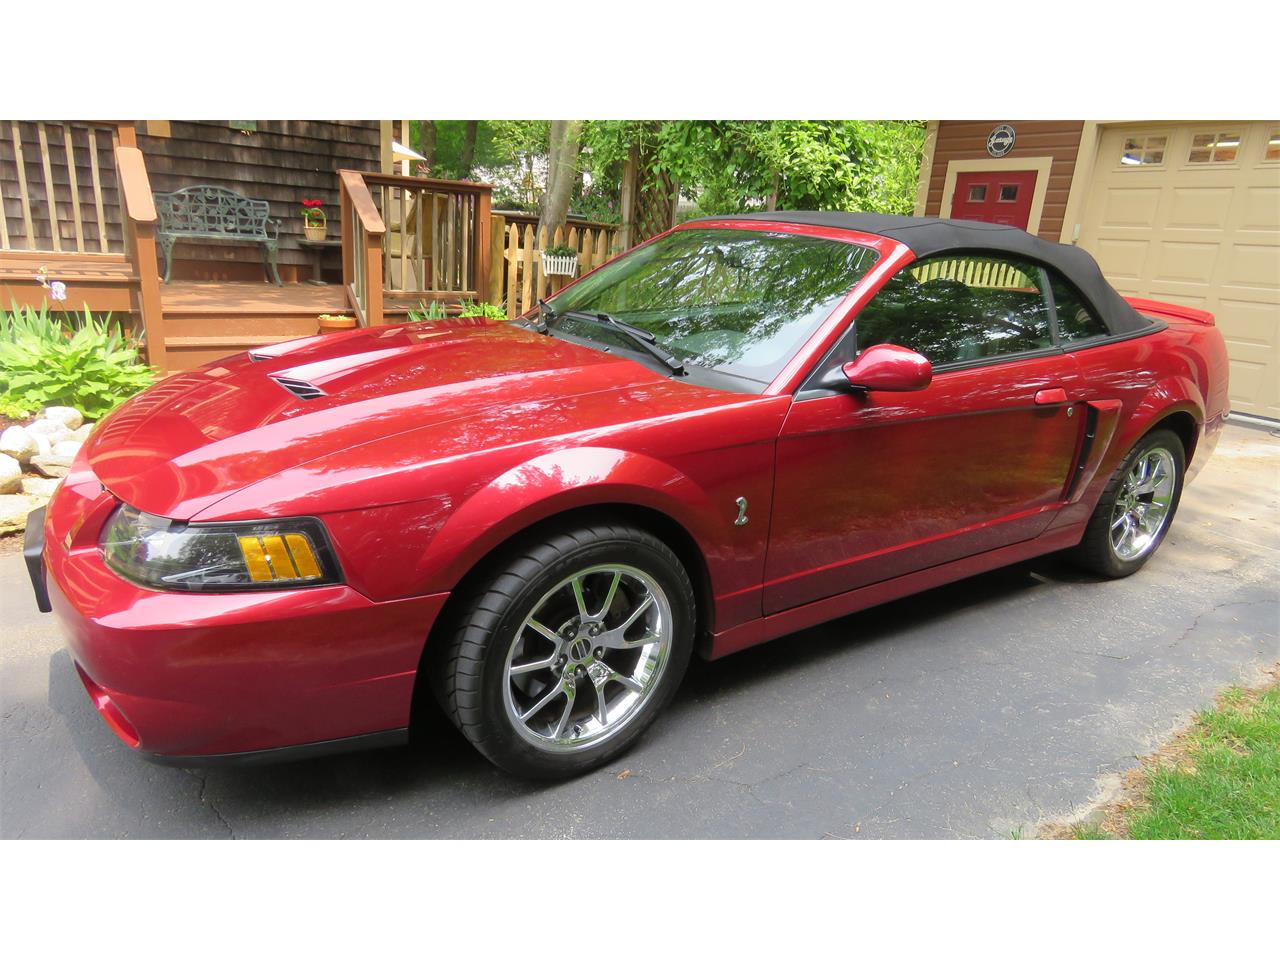 Large Picture of '04 Mustang SVT Cobra located in Hanson Massachusetts Offered by a Private Seller - QBSO